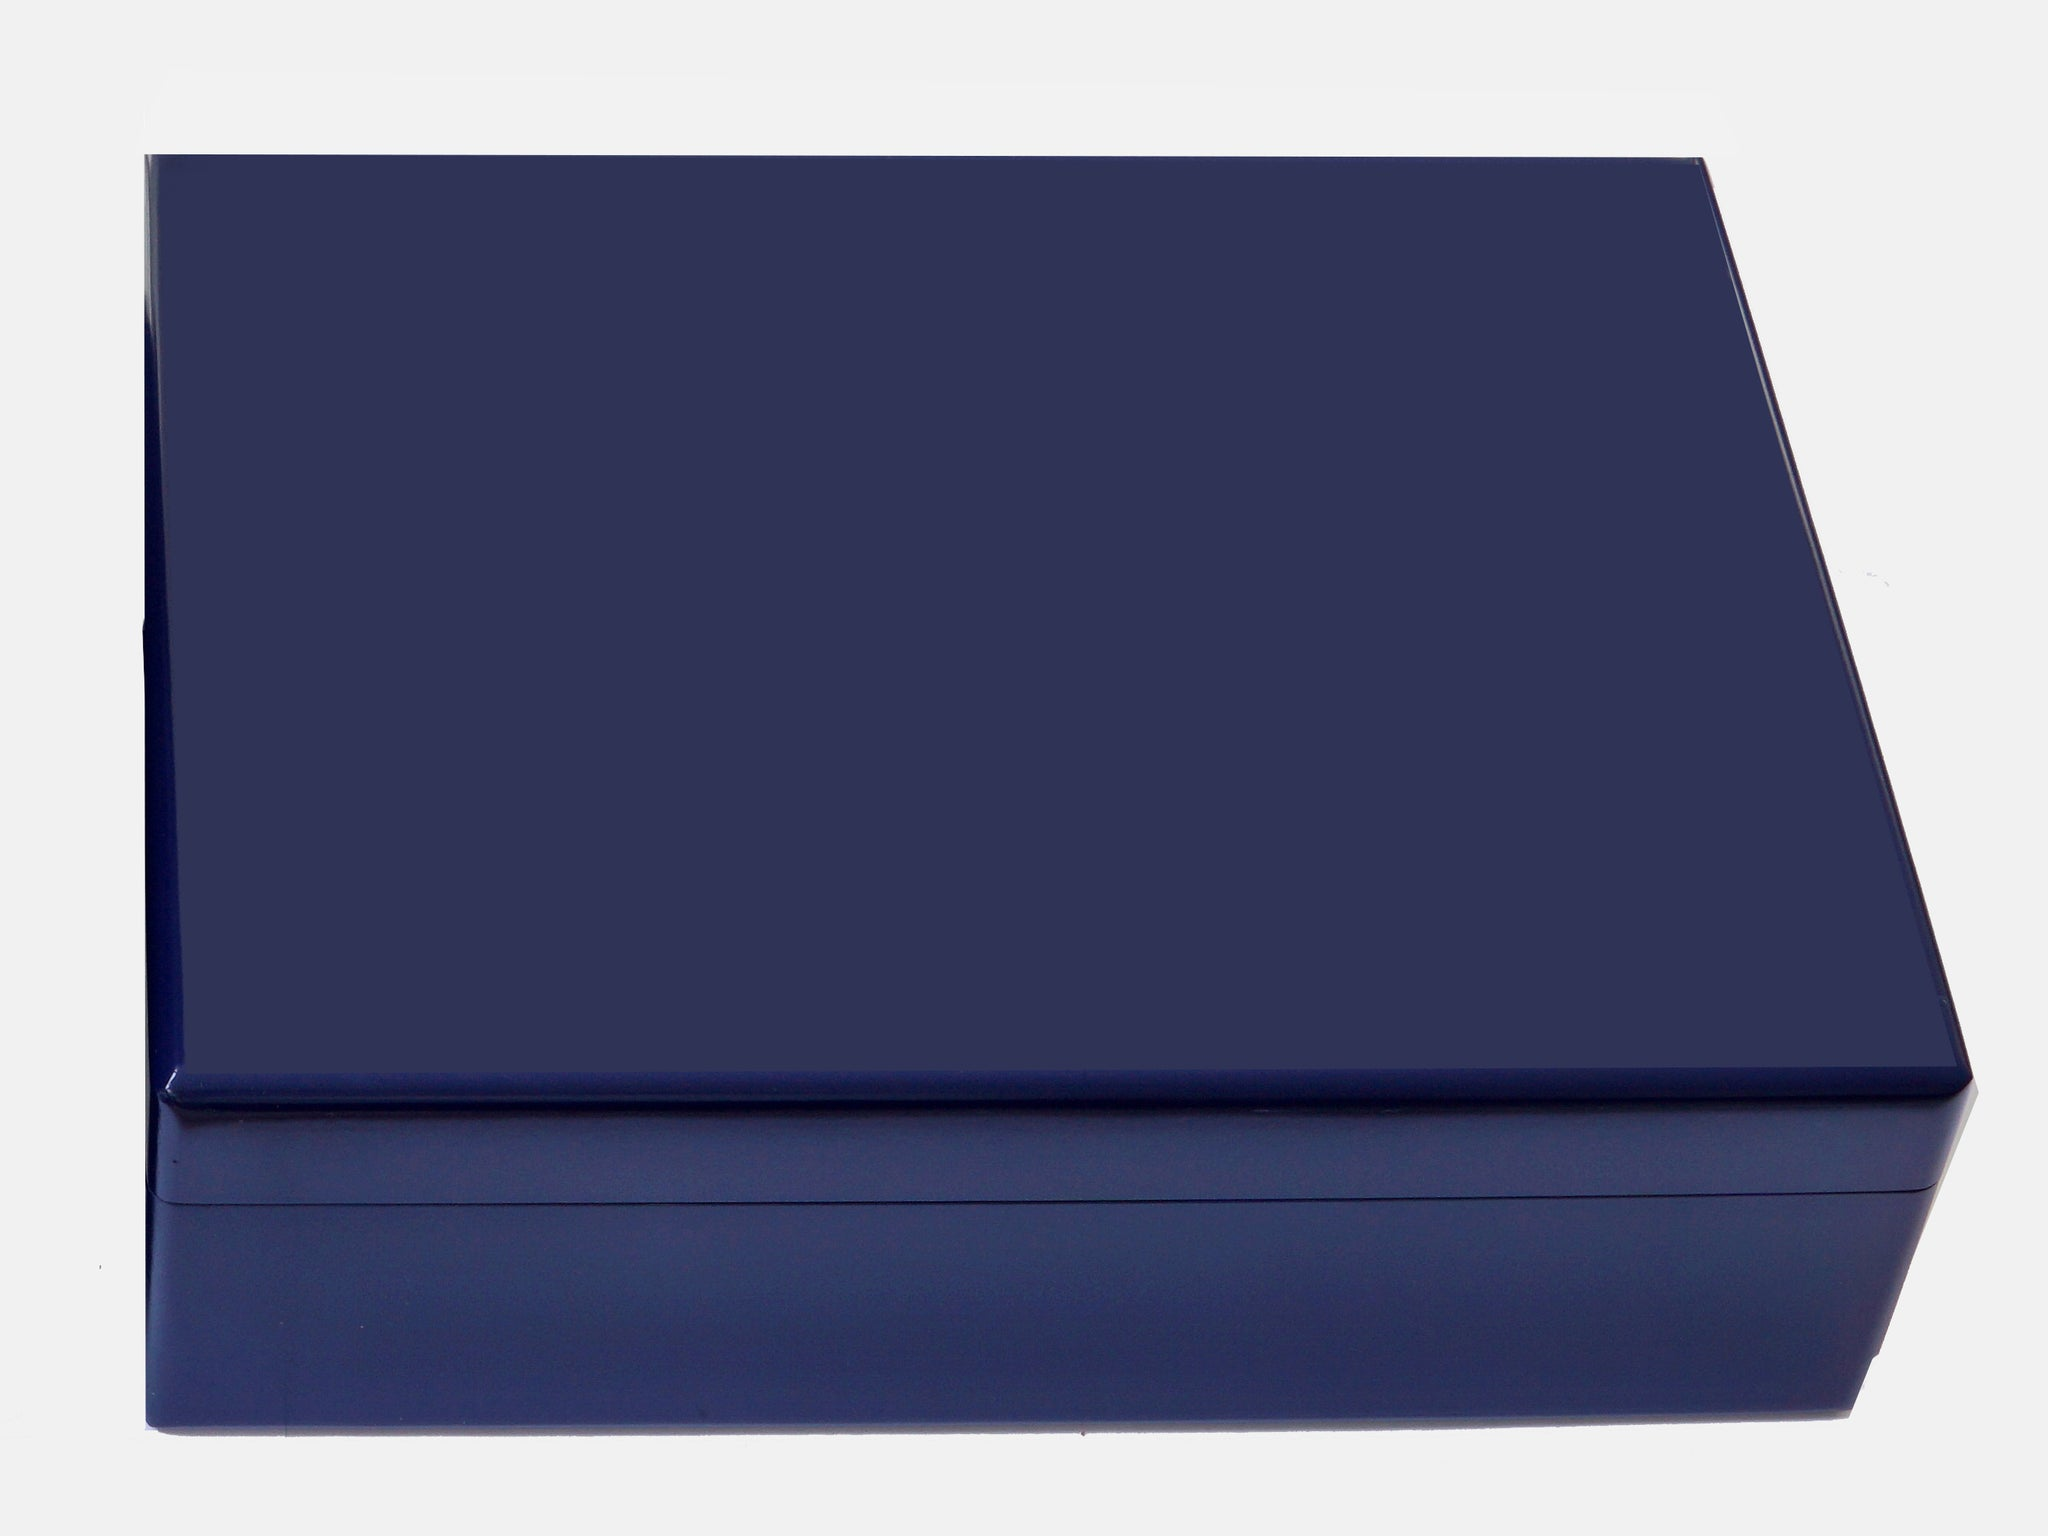 Luxury Blue A4 Document Wood Box